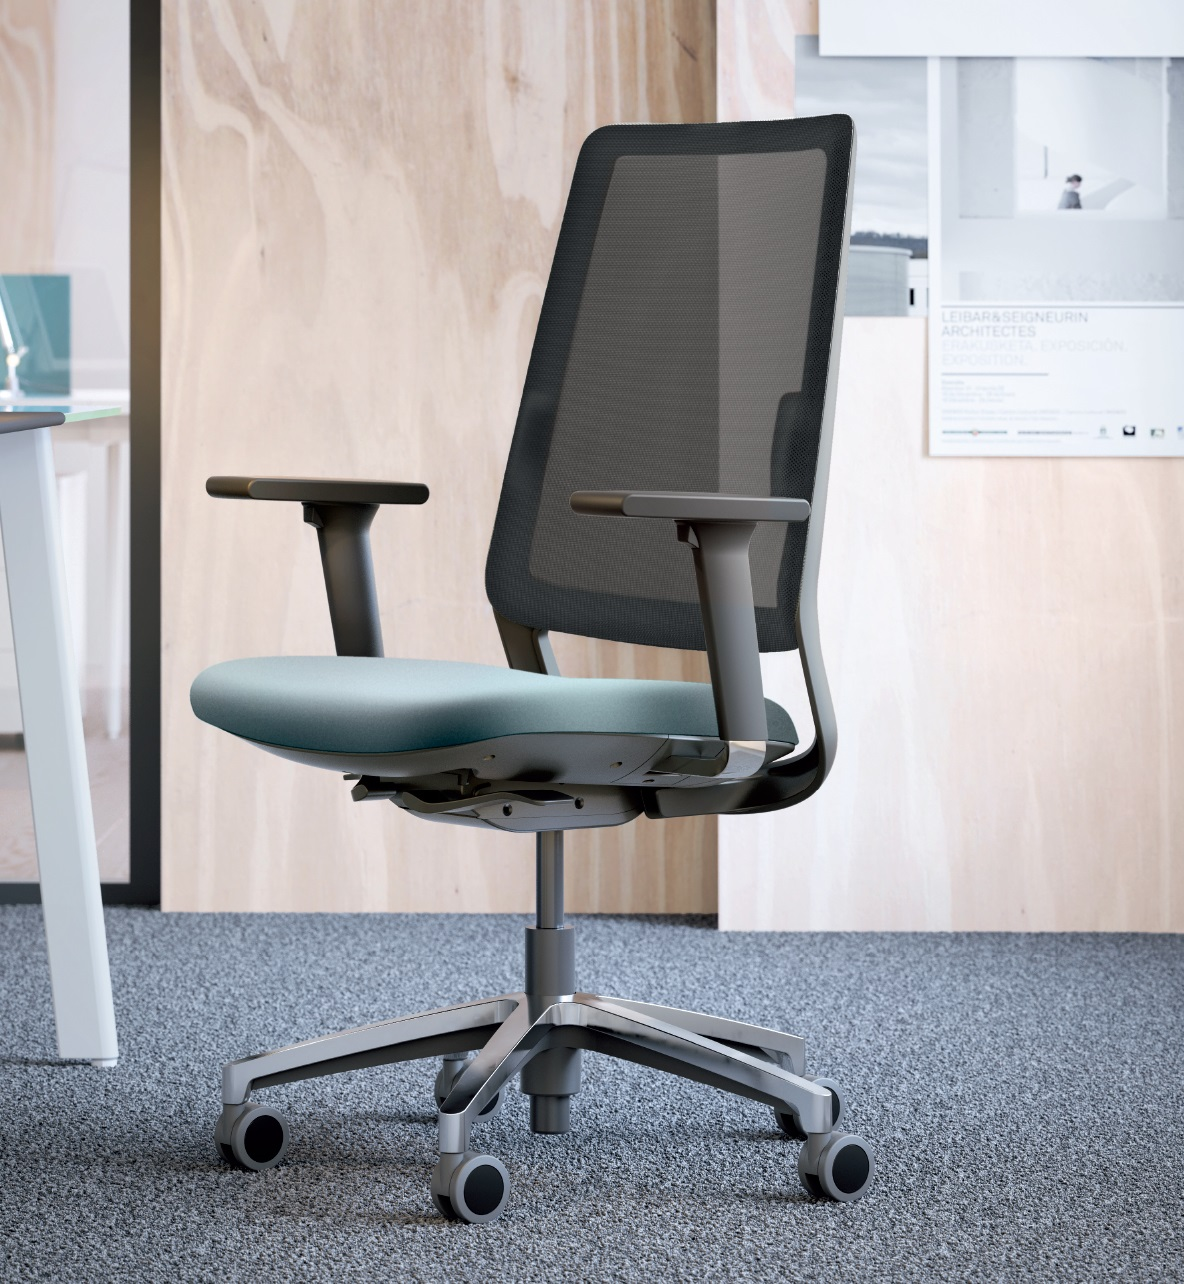 Office_chairs_Lebanon_21.jpg